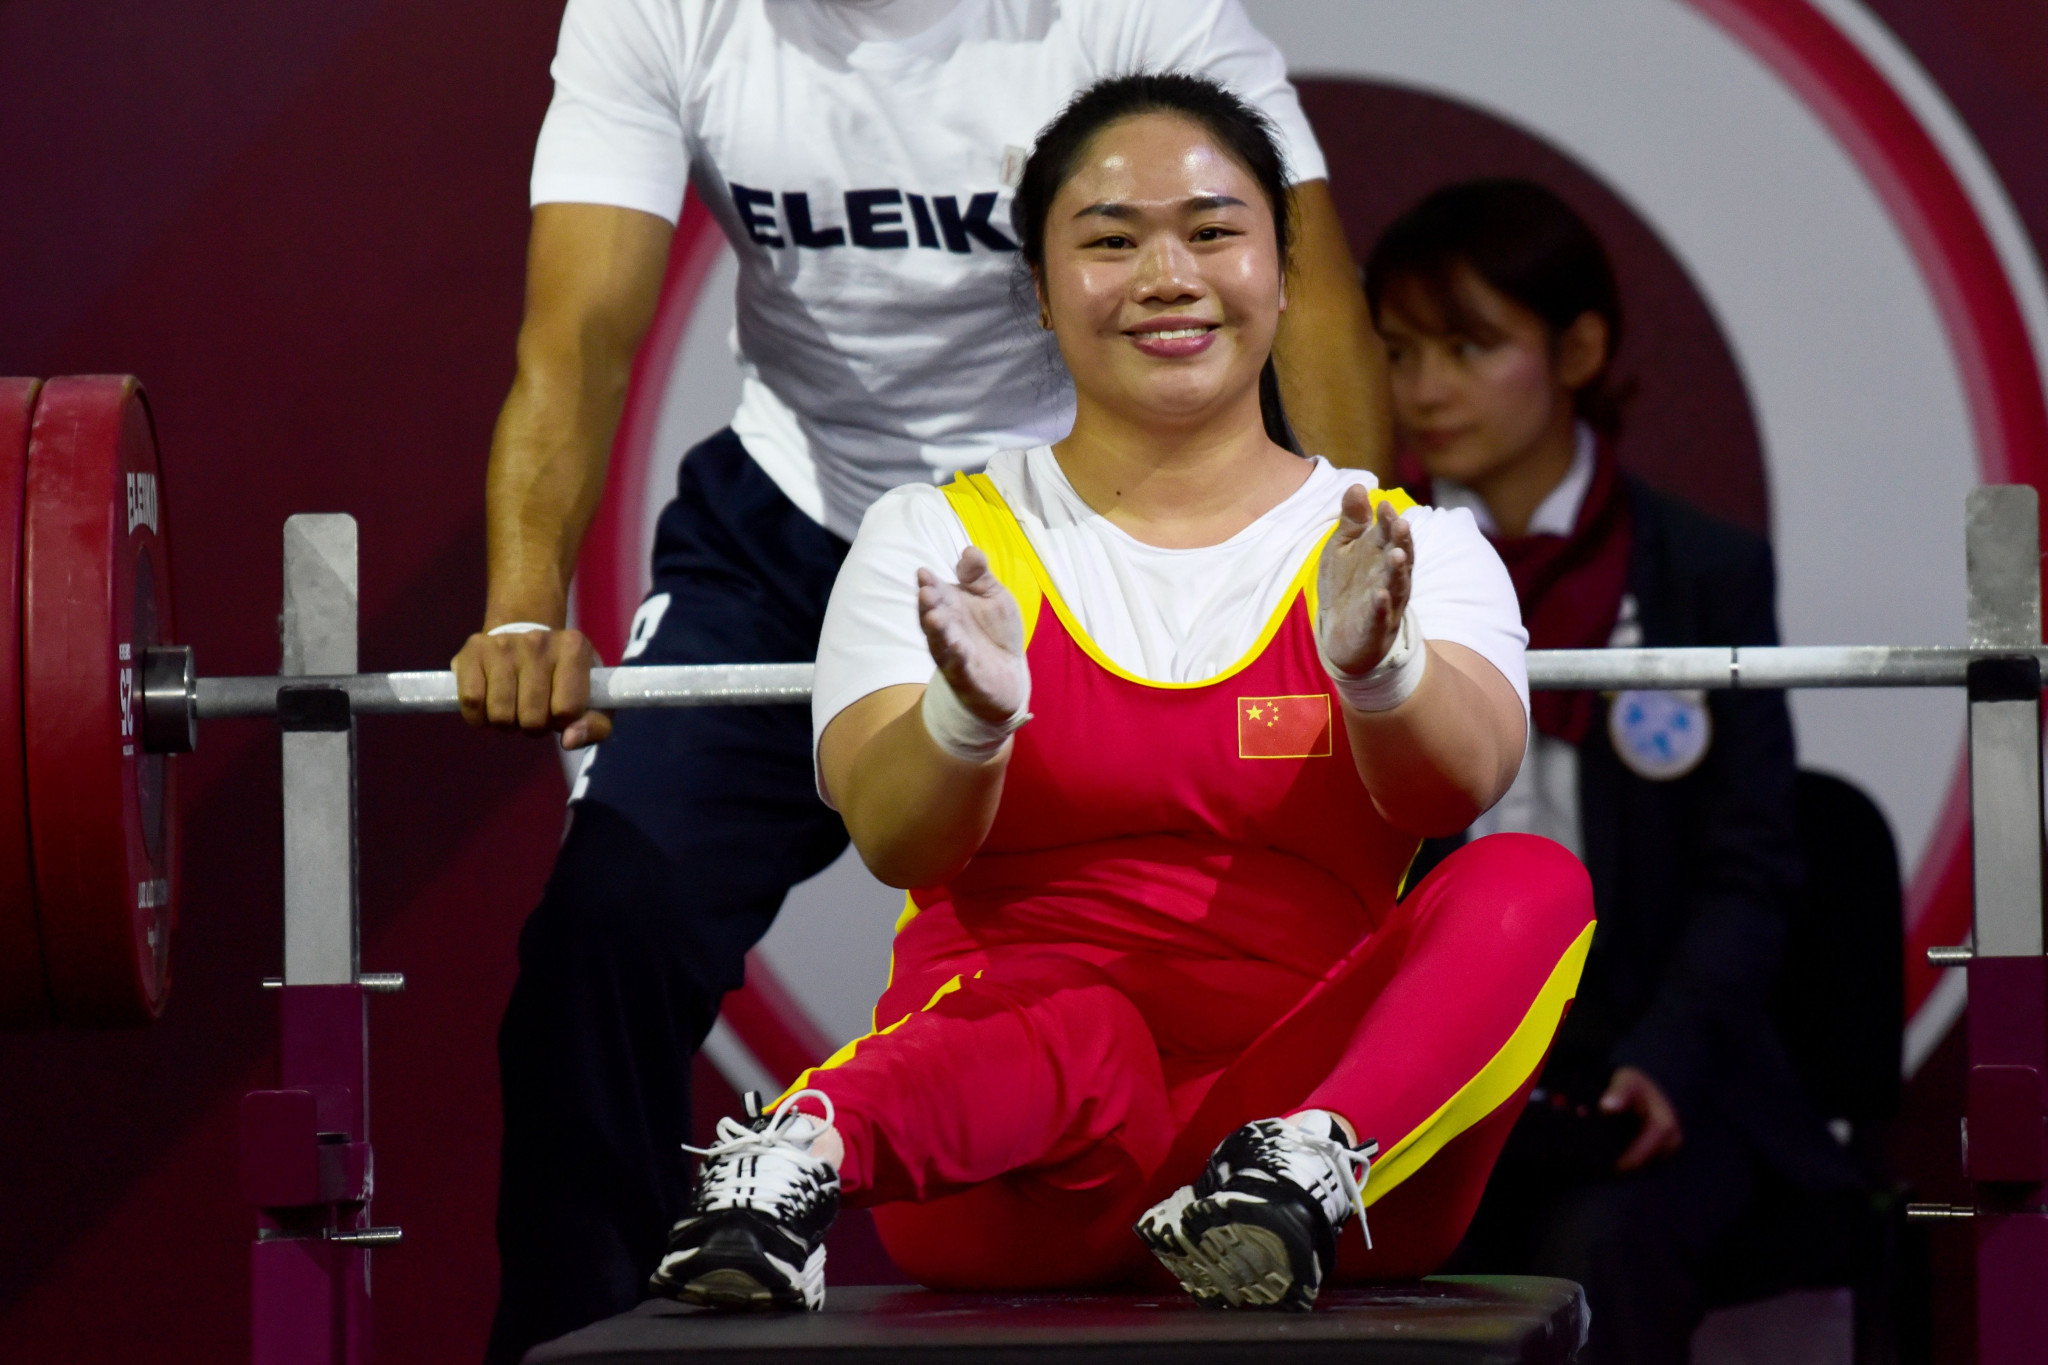 Tan Yujiao won gold at the Rio 2016 Paralympics and set a world record to claim regional gold ©Getty Images